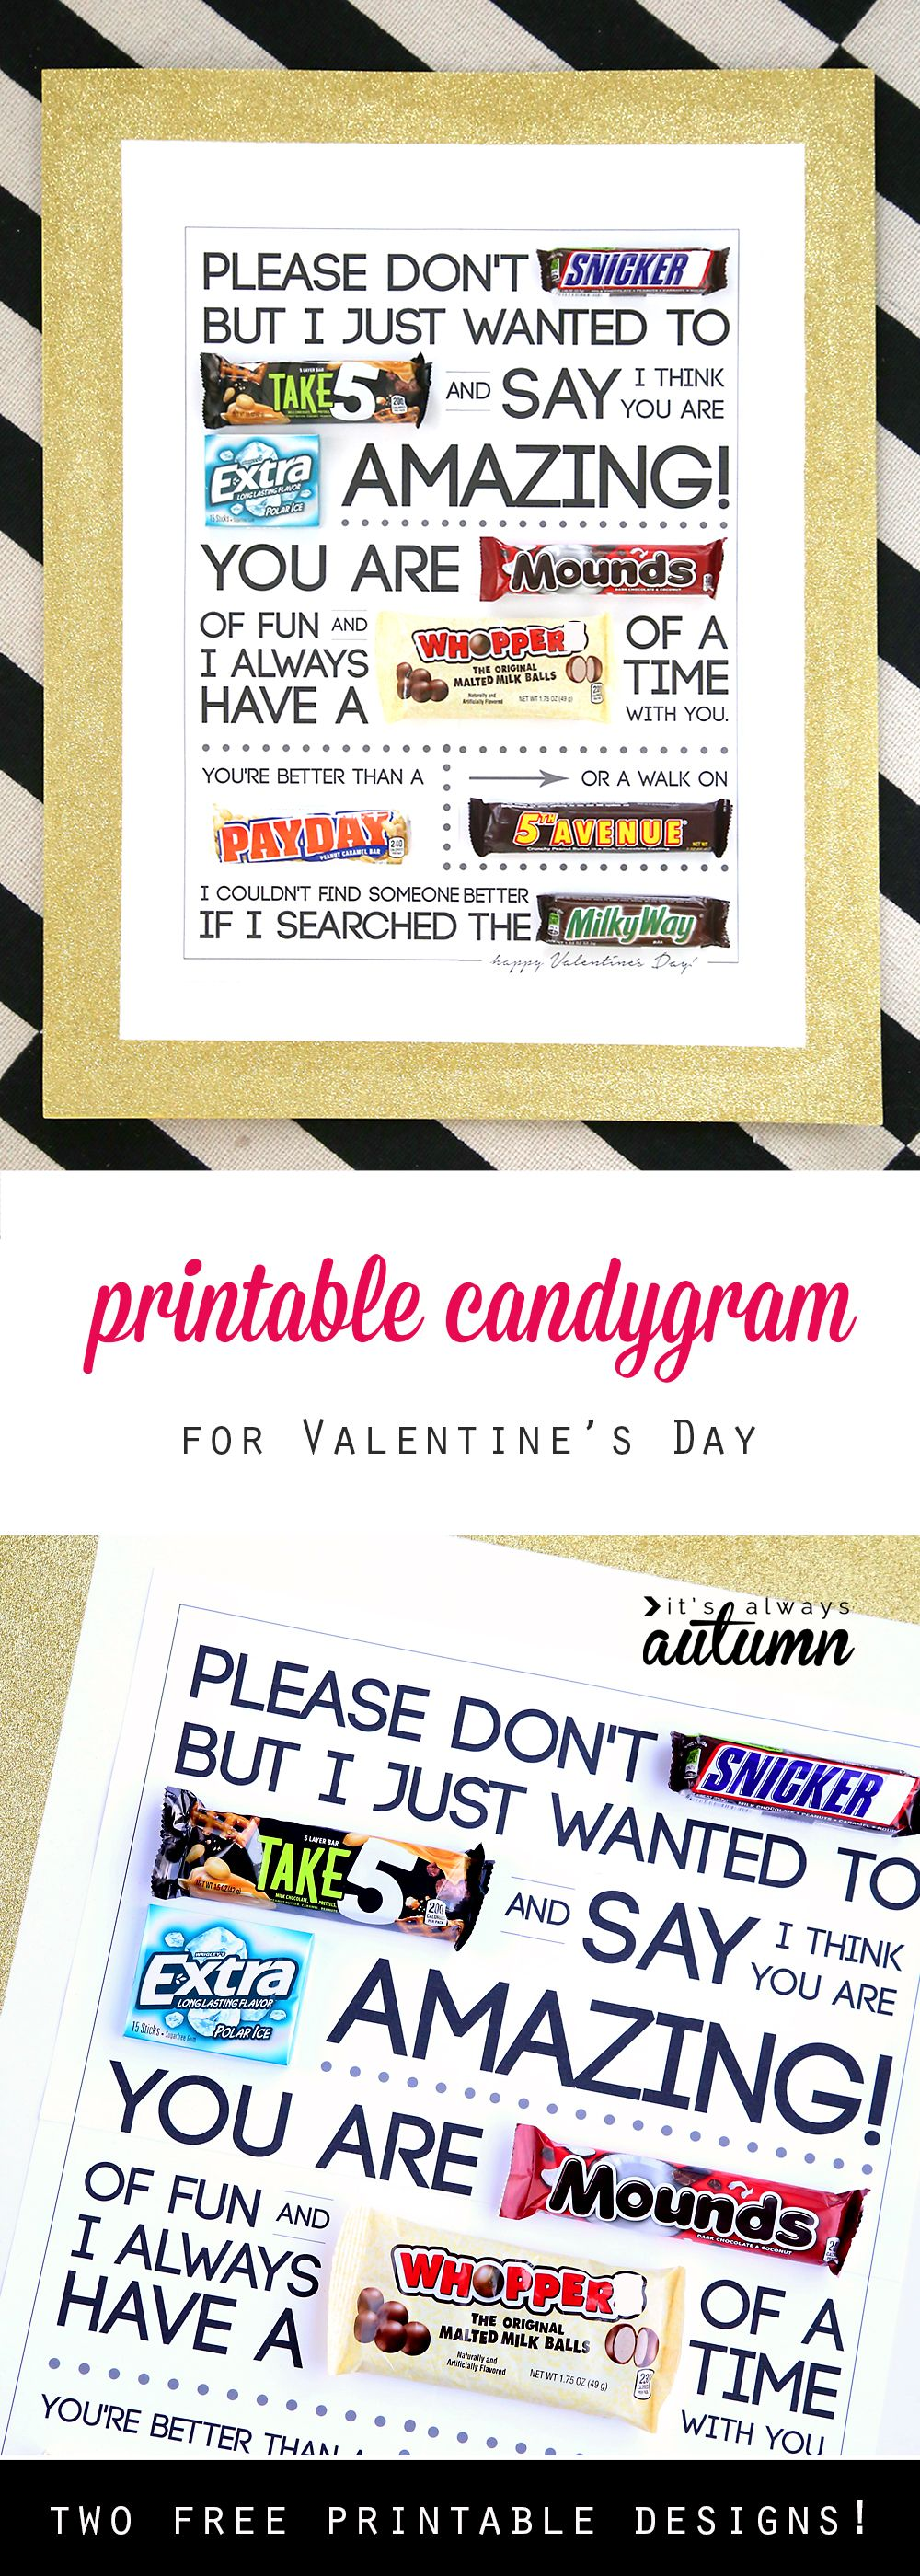 Free printable Valentine\'s Day candygram (candy poster | Pinterest ...